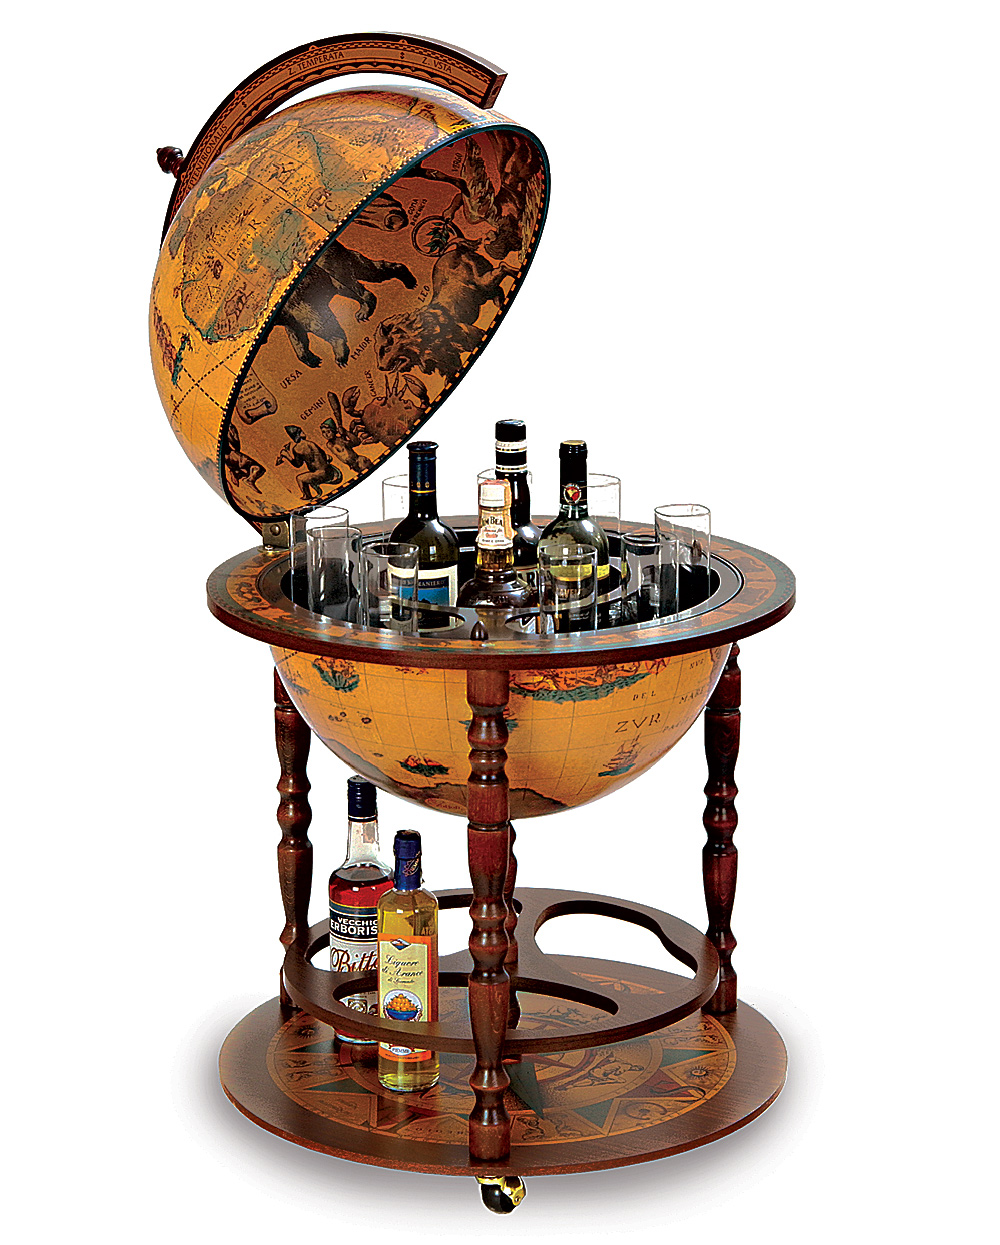 Basement Bar Design Accessories #9: Global Domination - The Pegu Blog